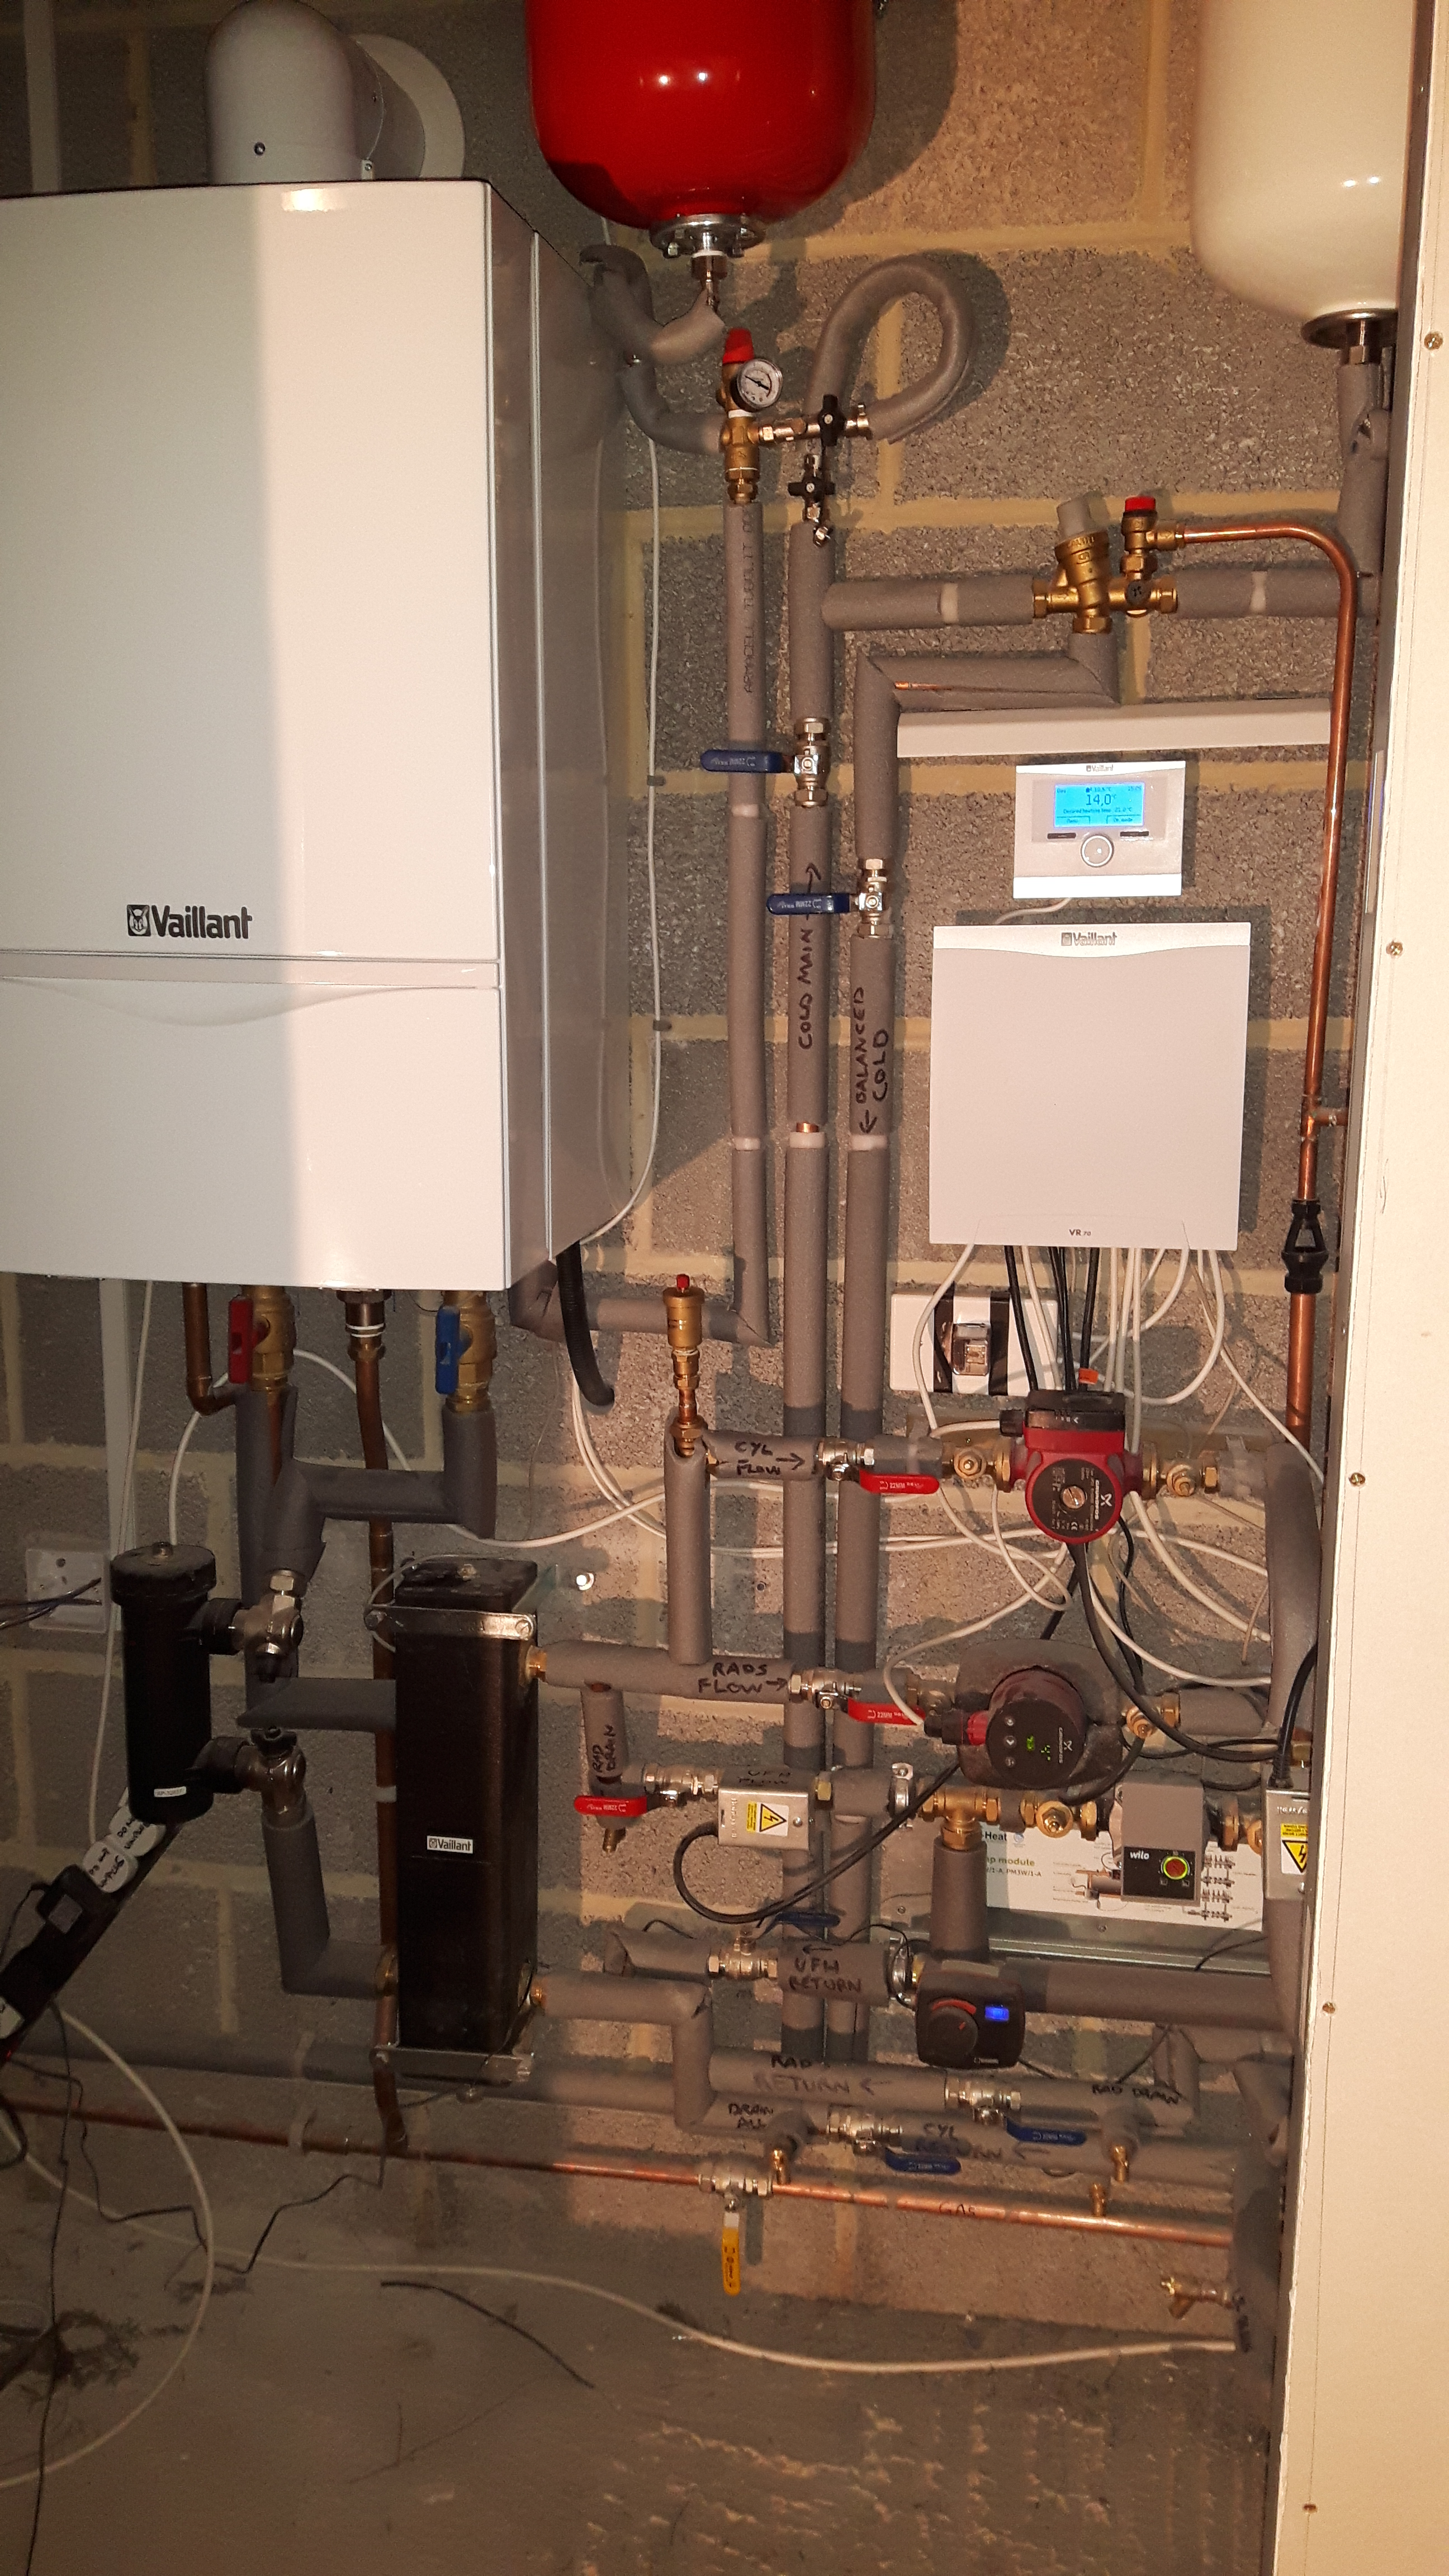 Vaillant 46kW Boiler Plant Room